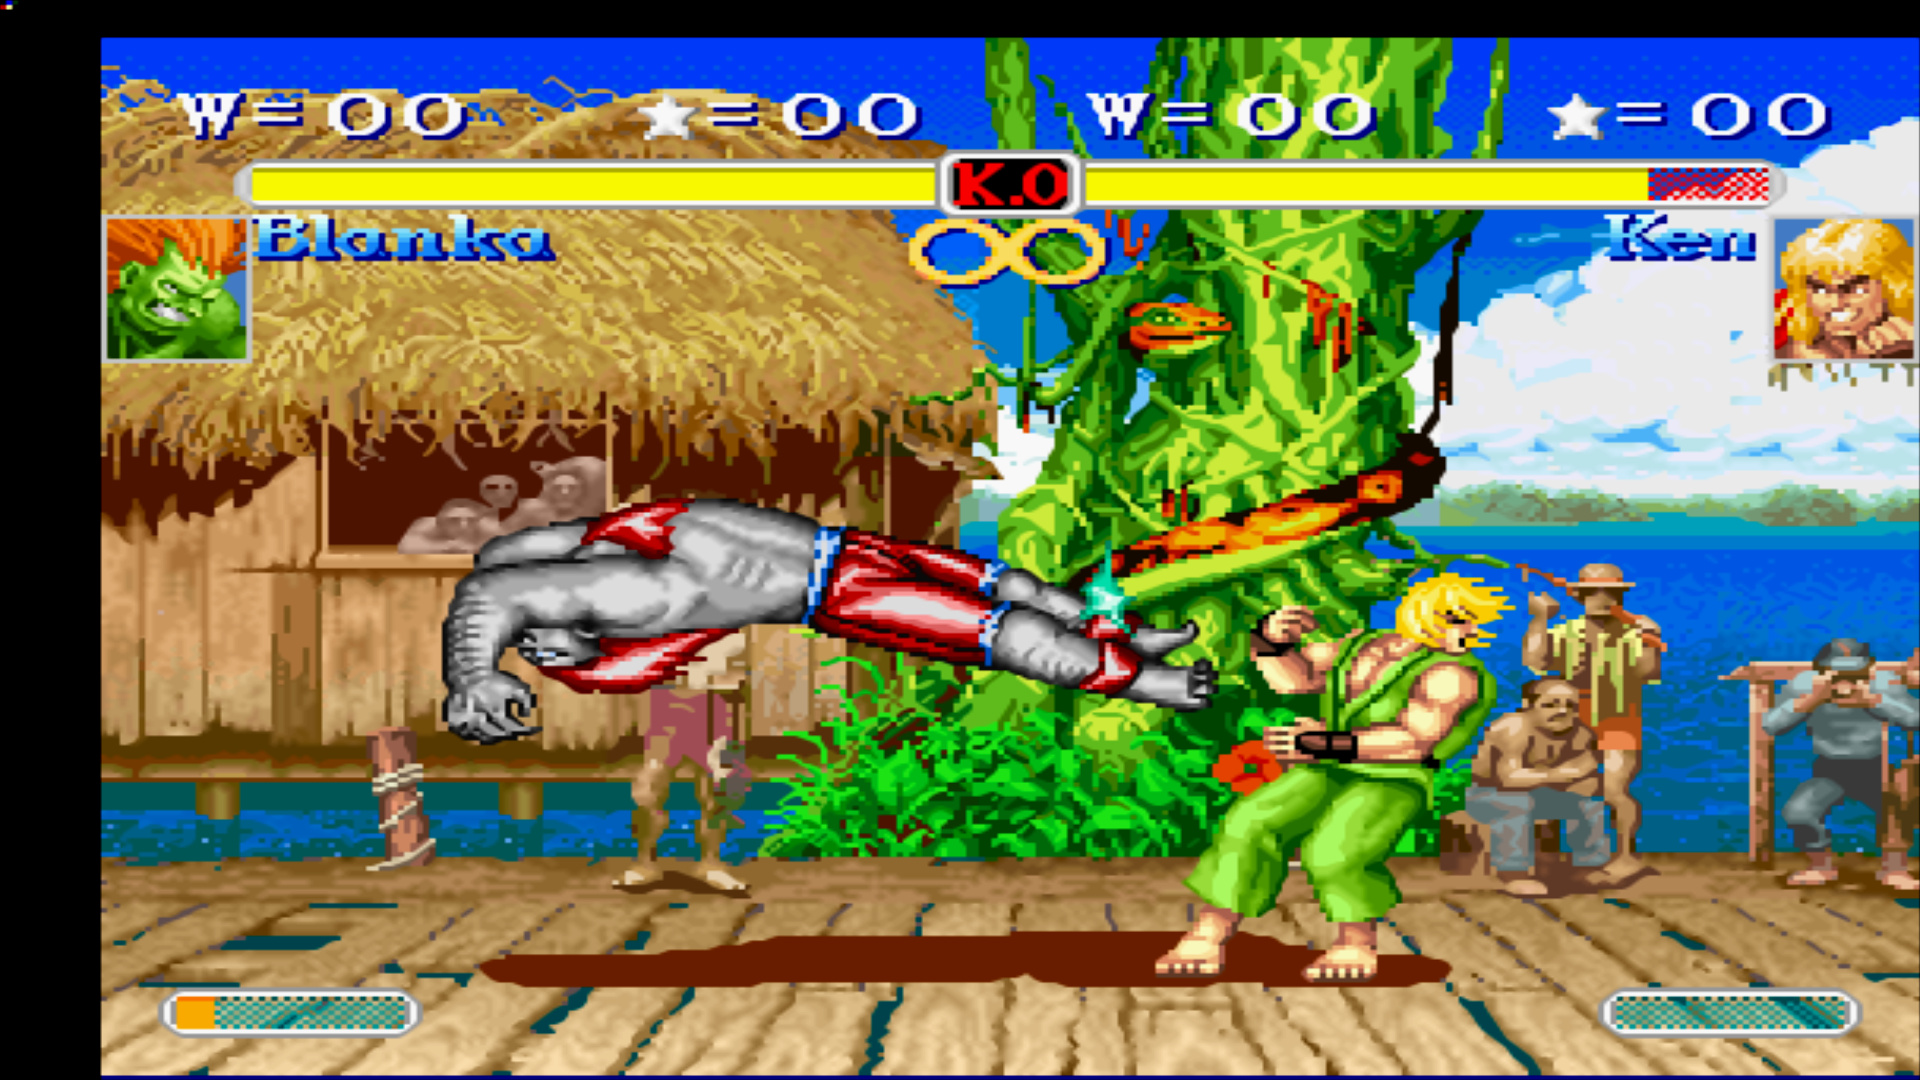 Super Street Fighter 2 (4).jpg - -